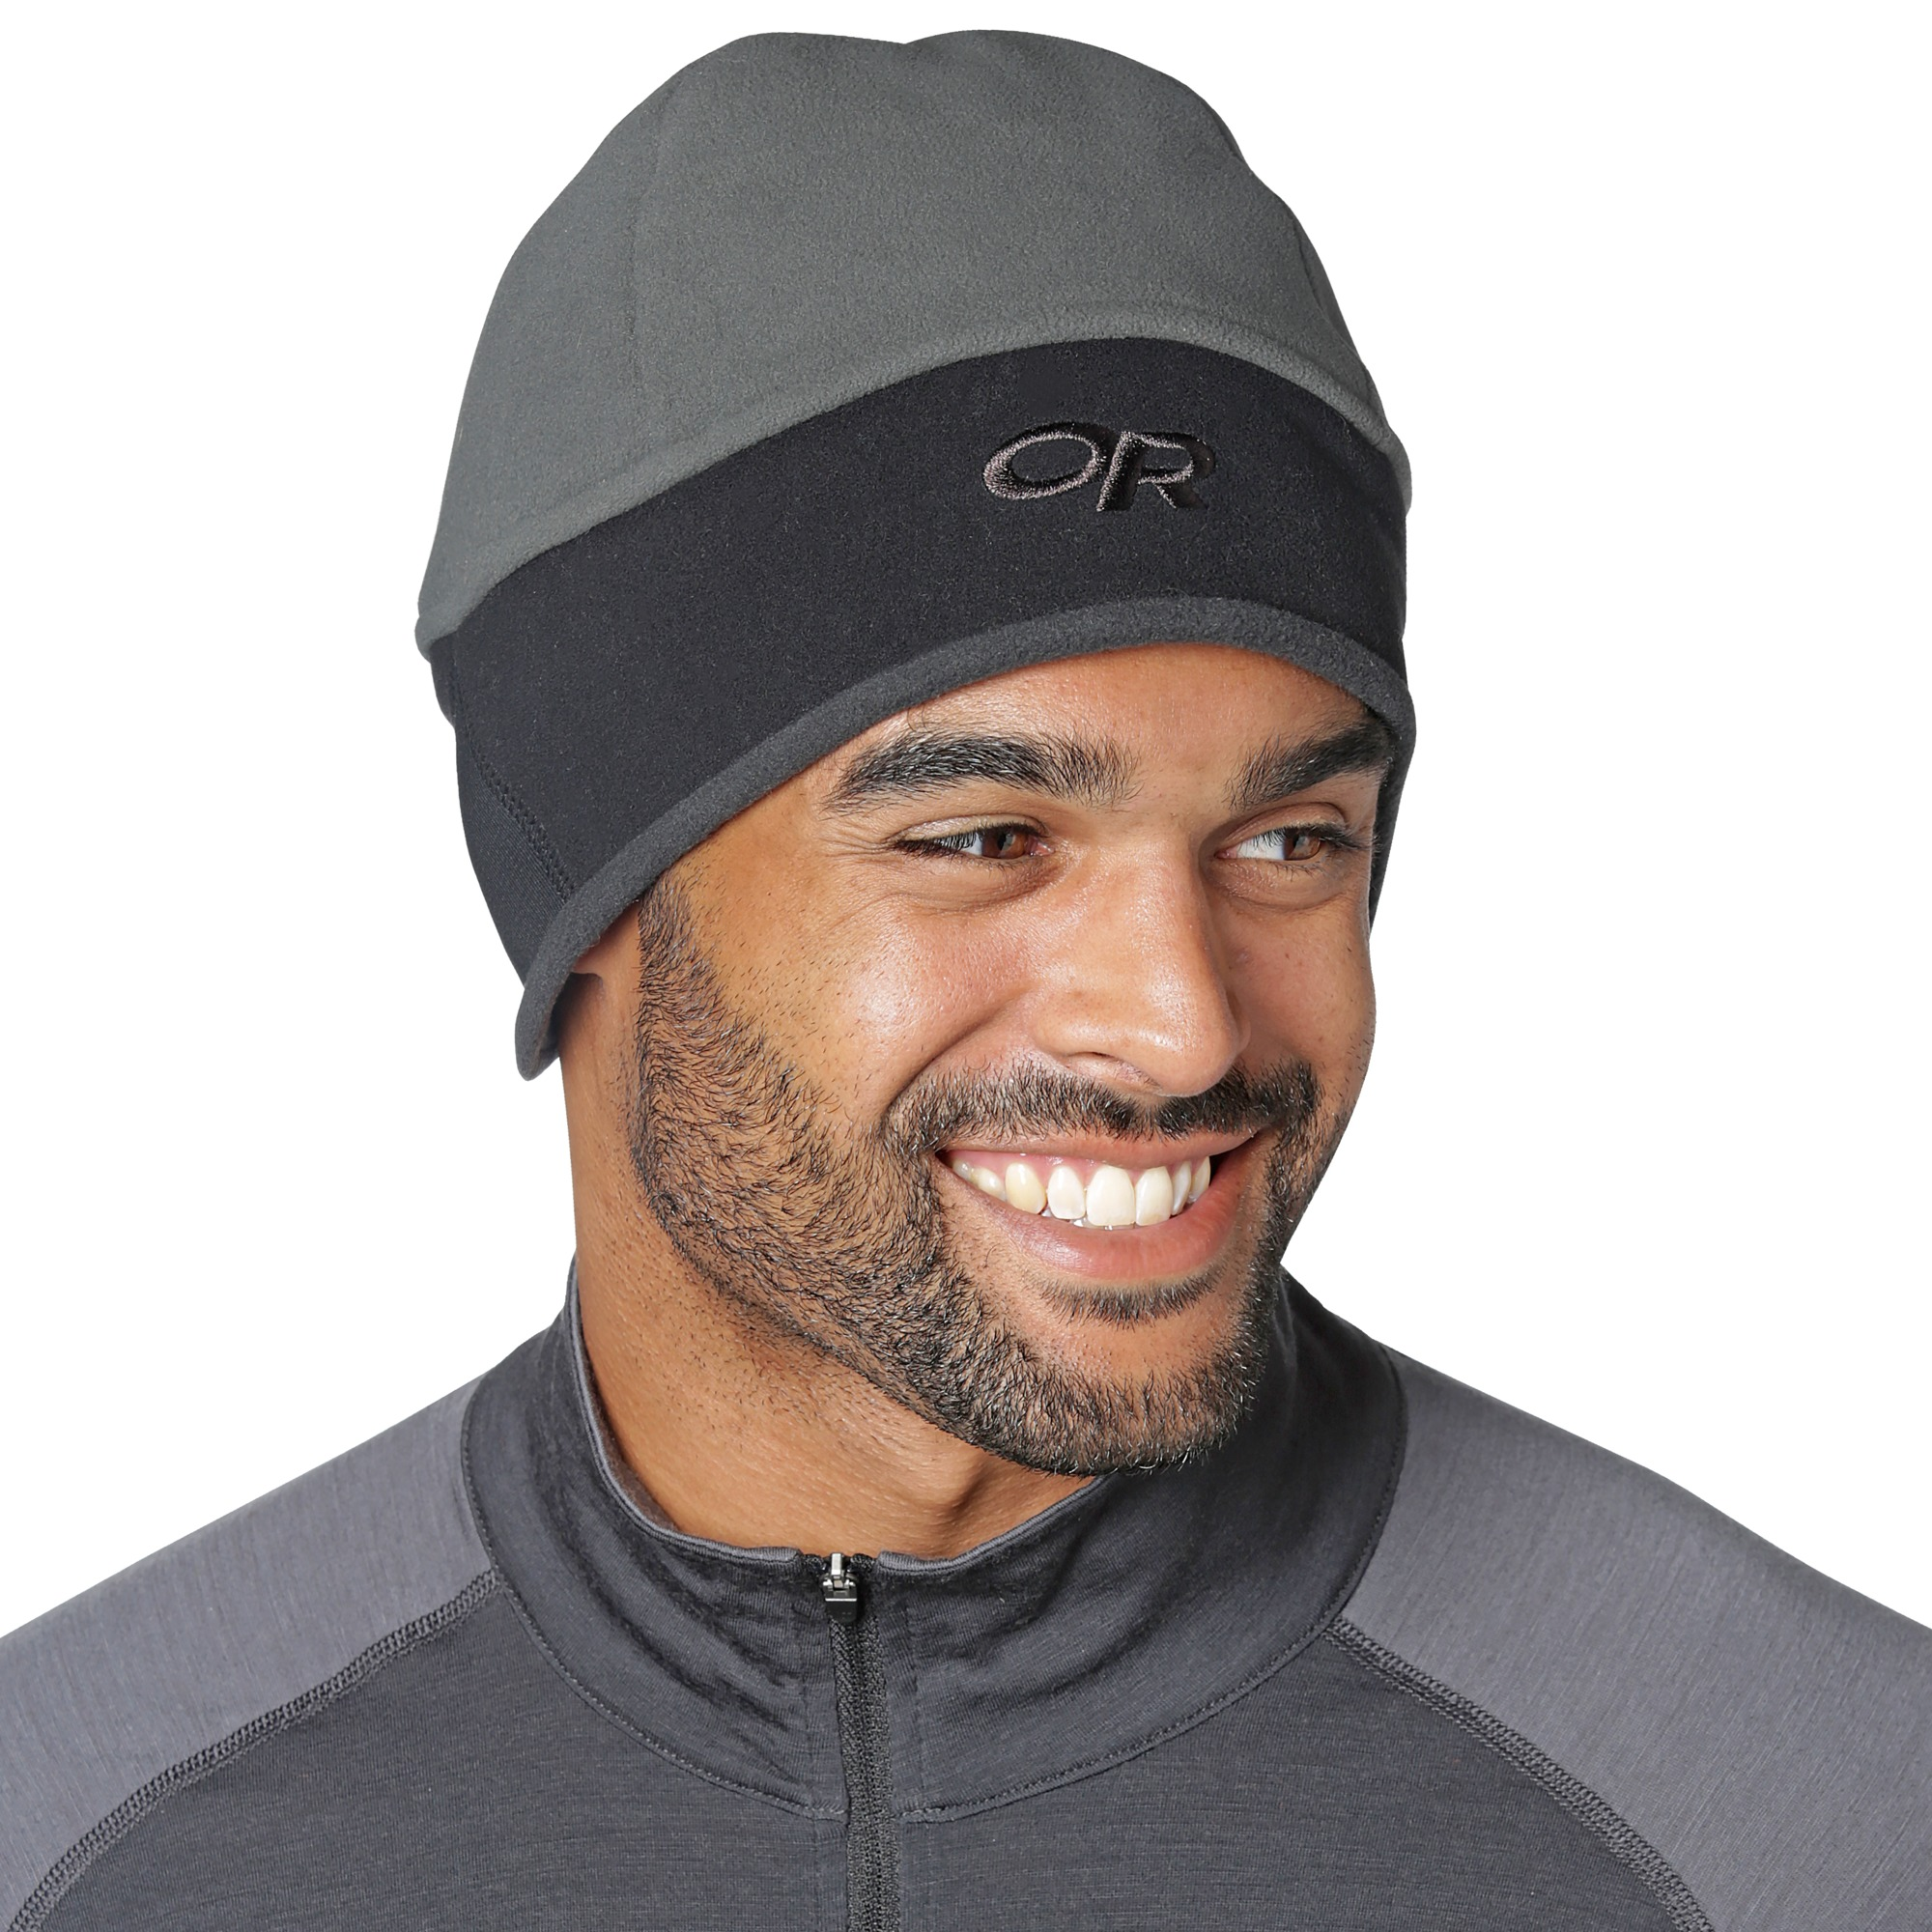 06c6f5ead2451 Wind Warrior Hat™ - charcoal black